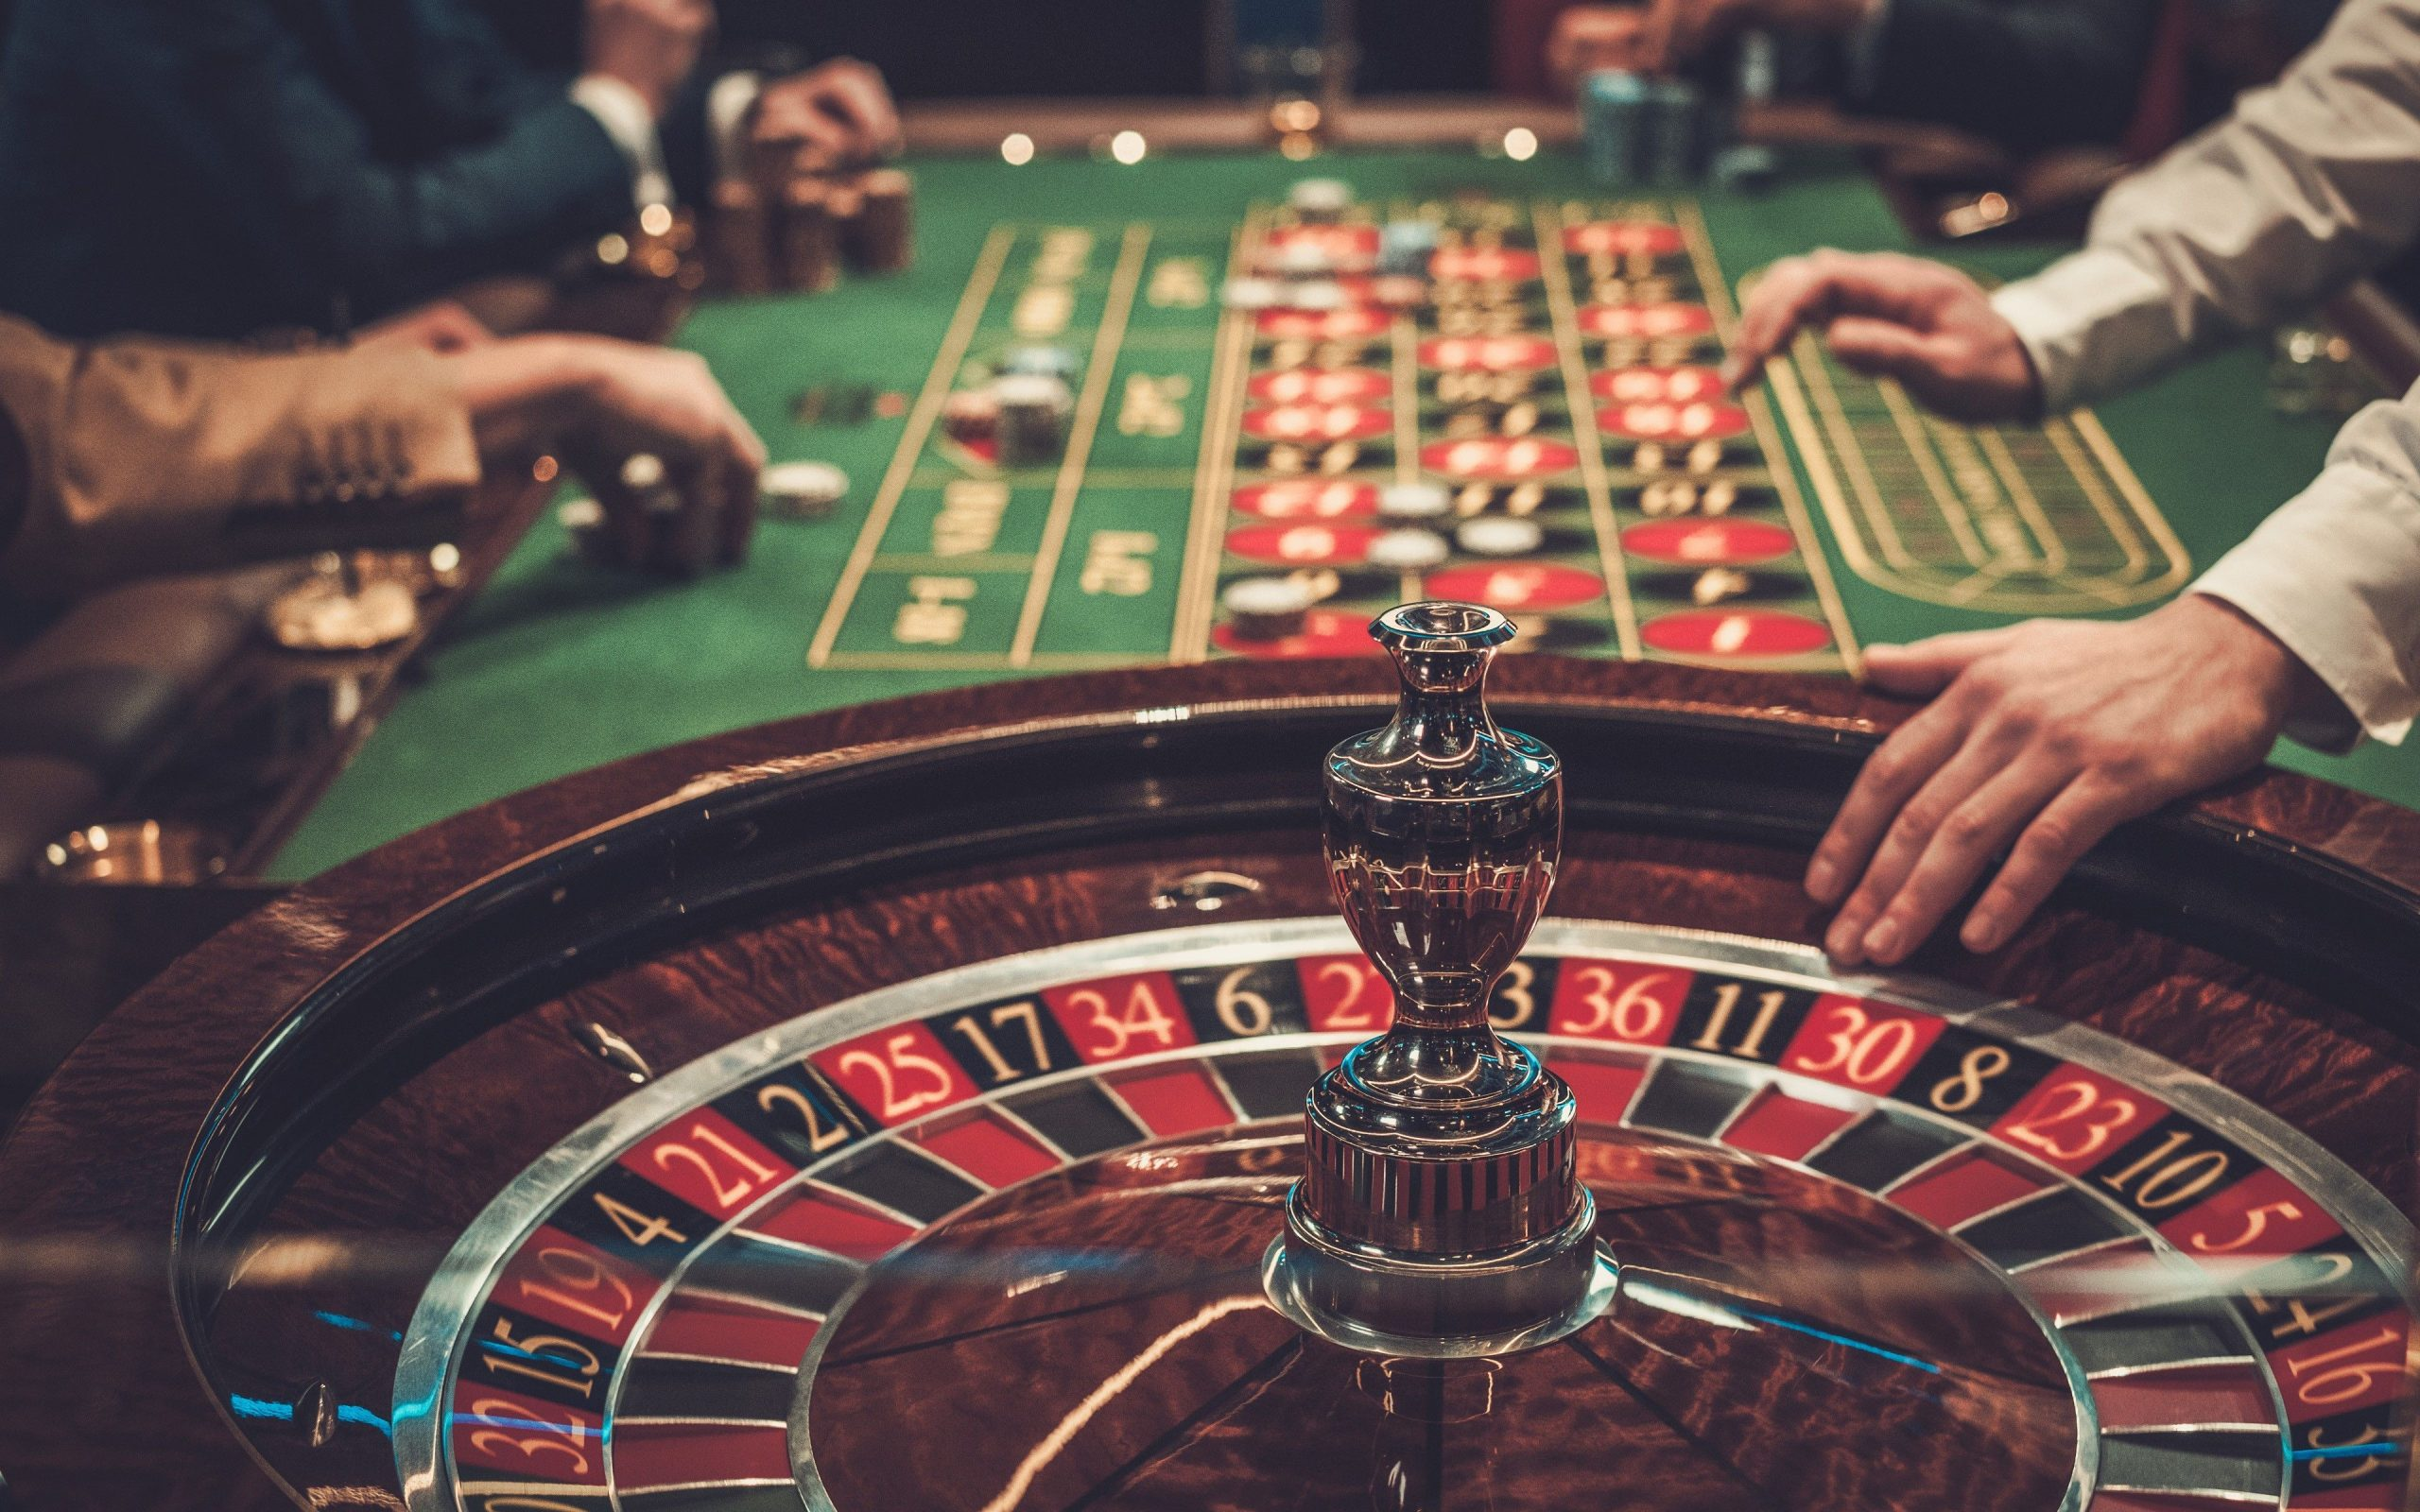 Just How Can Player Enjoy The Online Casino Game Without Any Frustration?